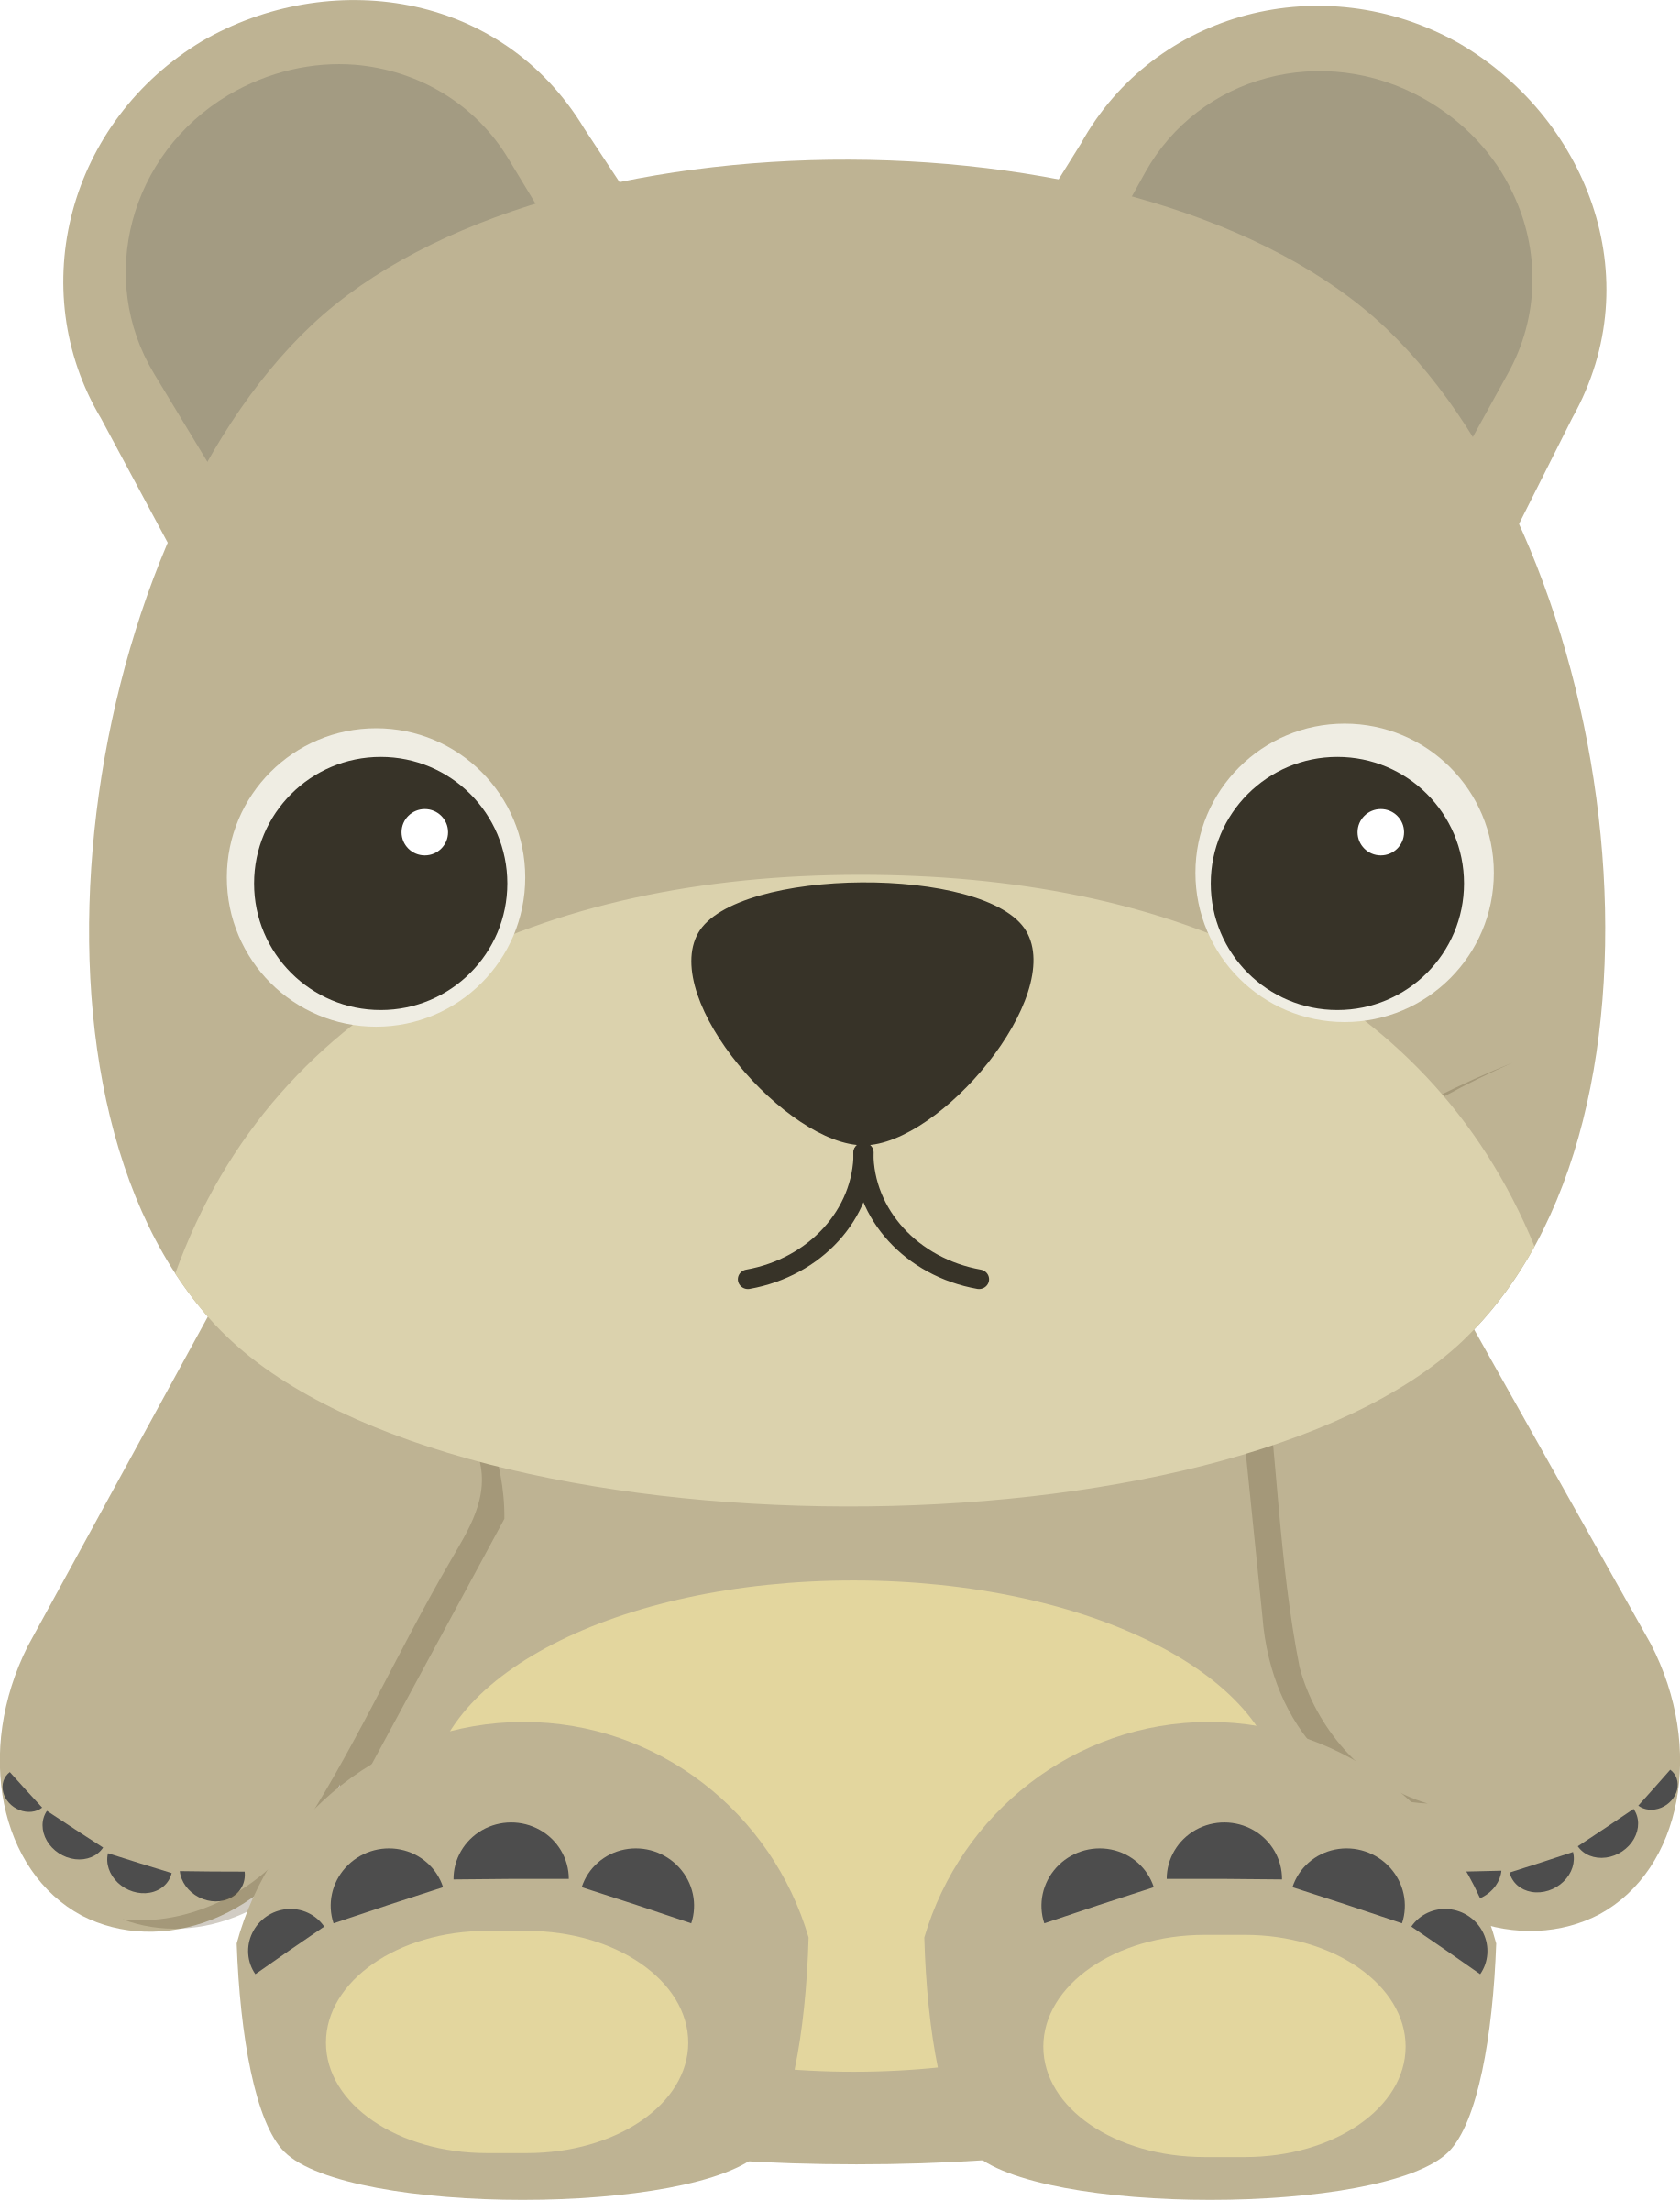 Bear by anarres